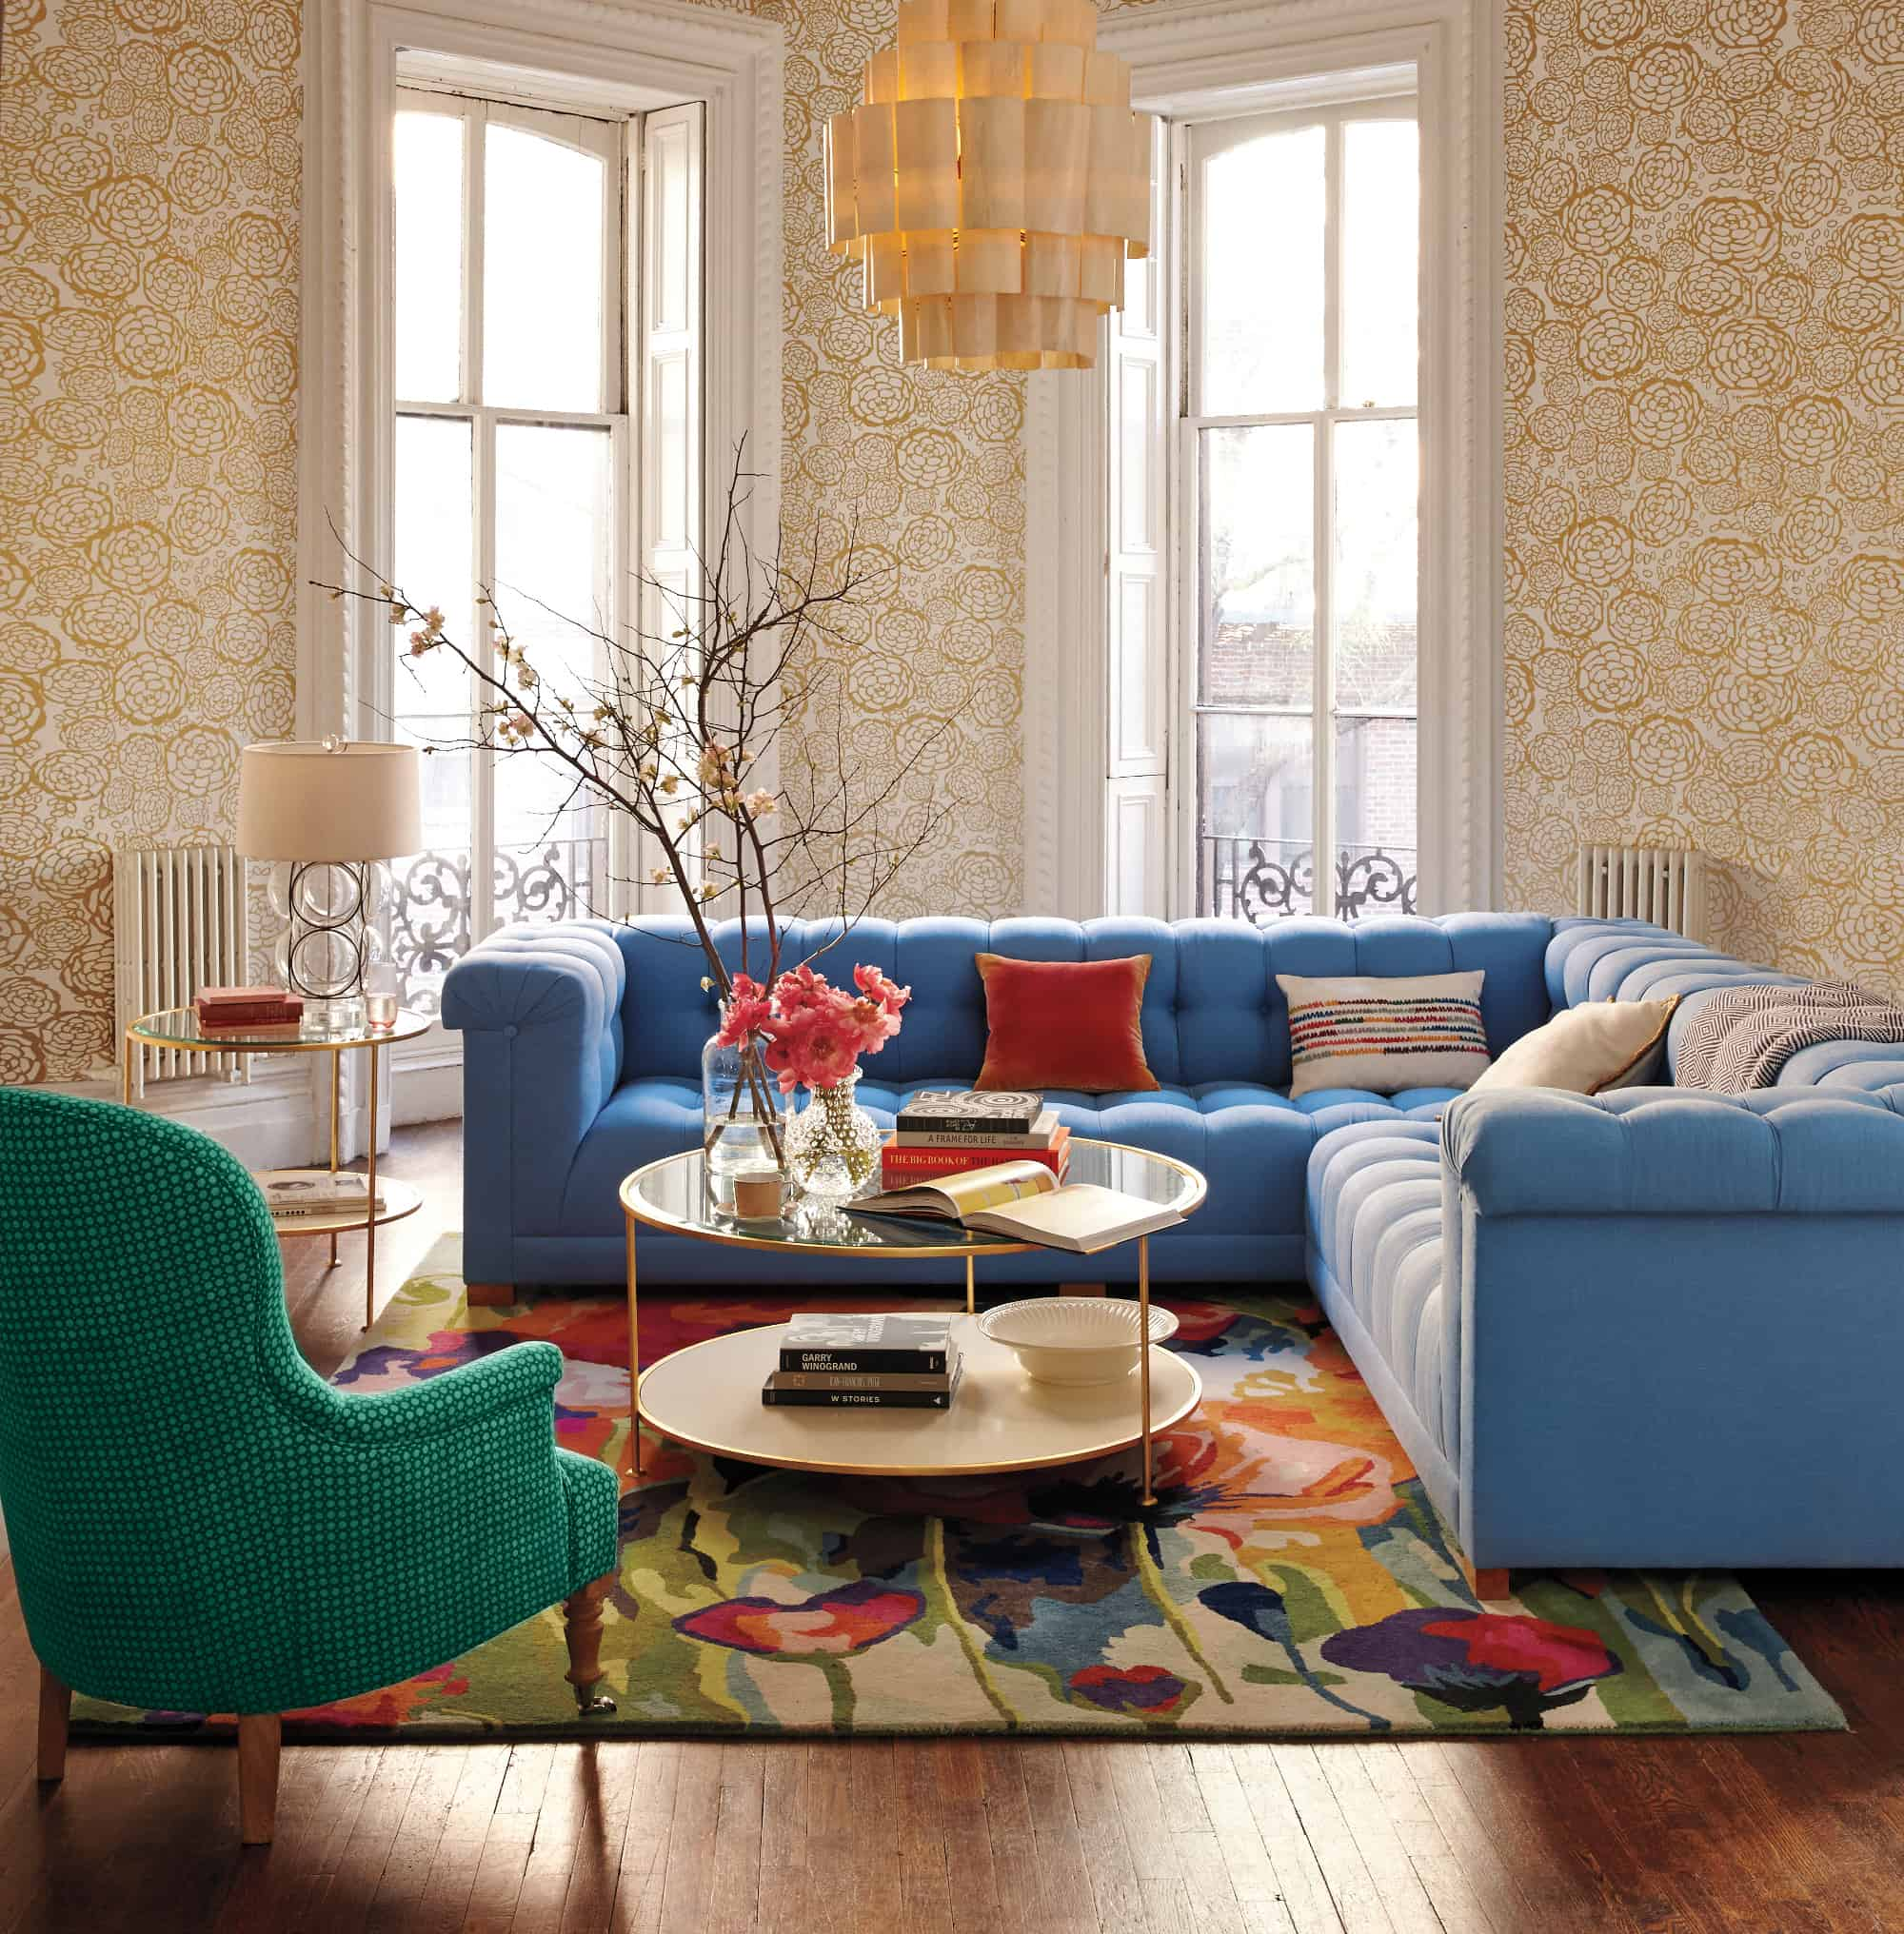 Color blocking with linen sofas and chairs is a modern way of adding something extra to your traditional mid-century decor